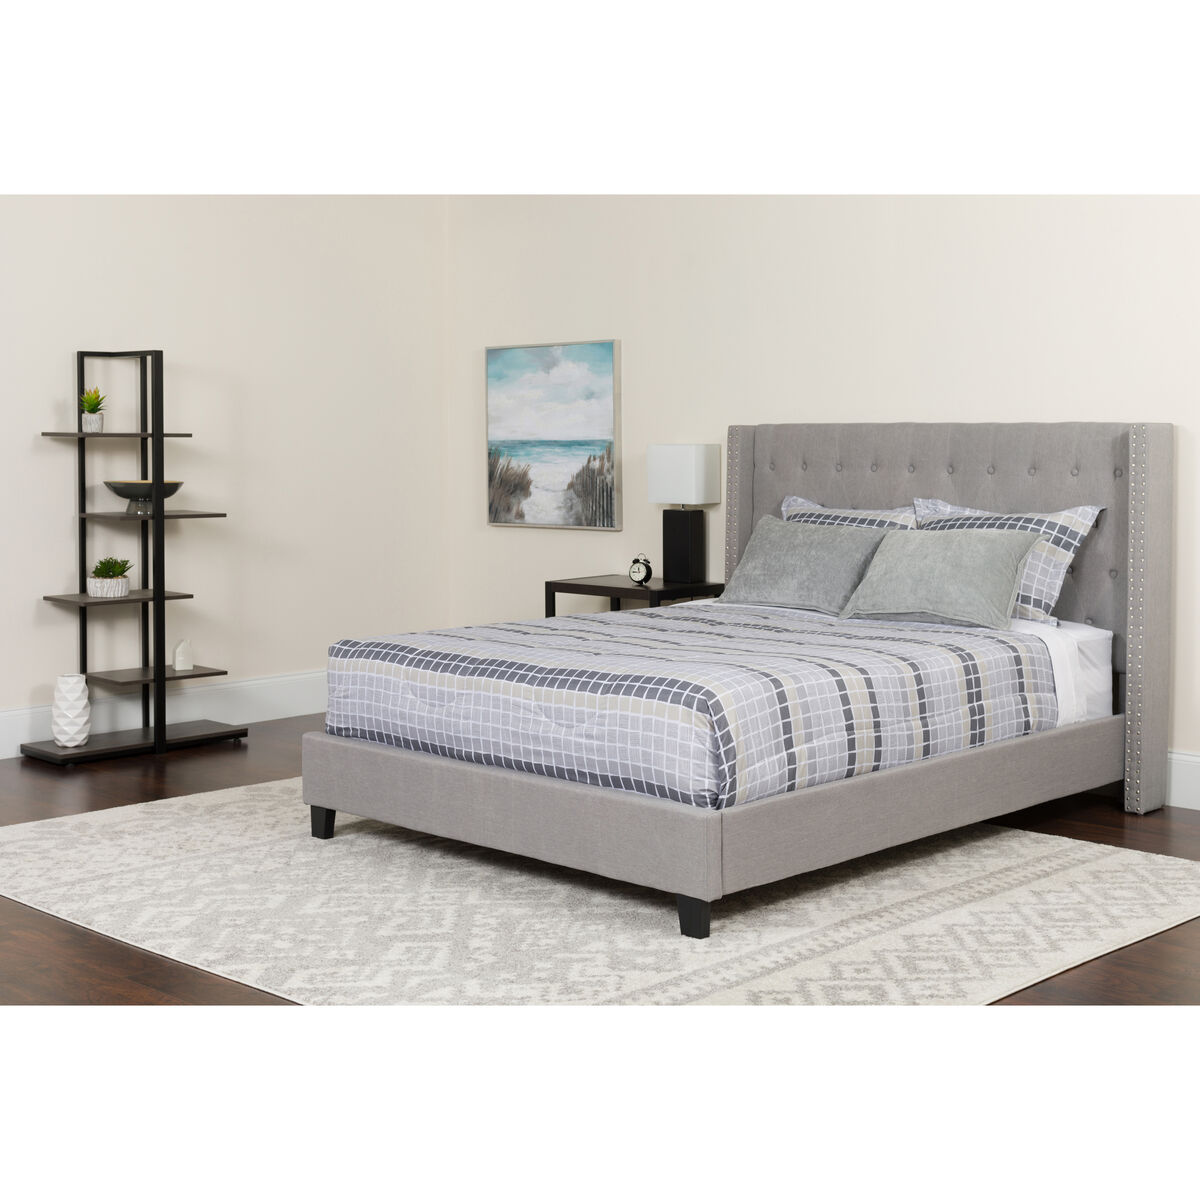 Our riverdale twin size tufted upholstered platform bed in light gray fabric is on sale now